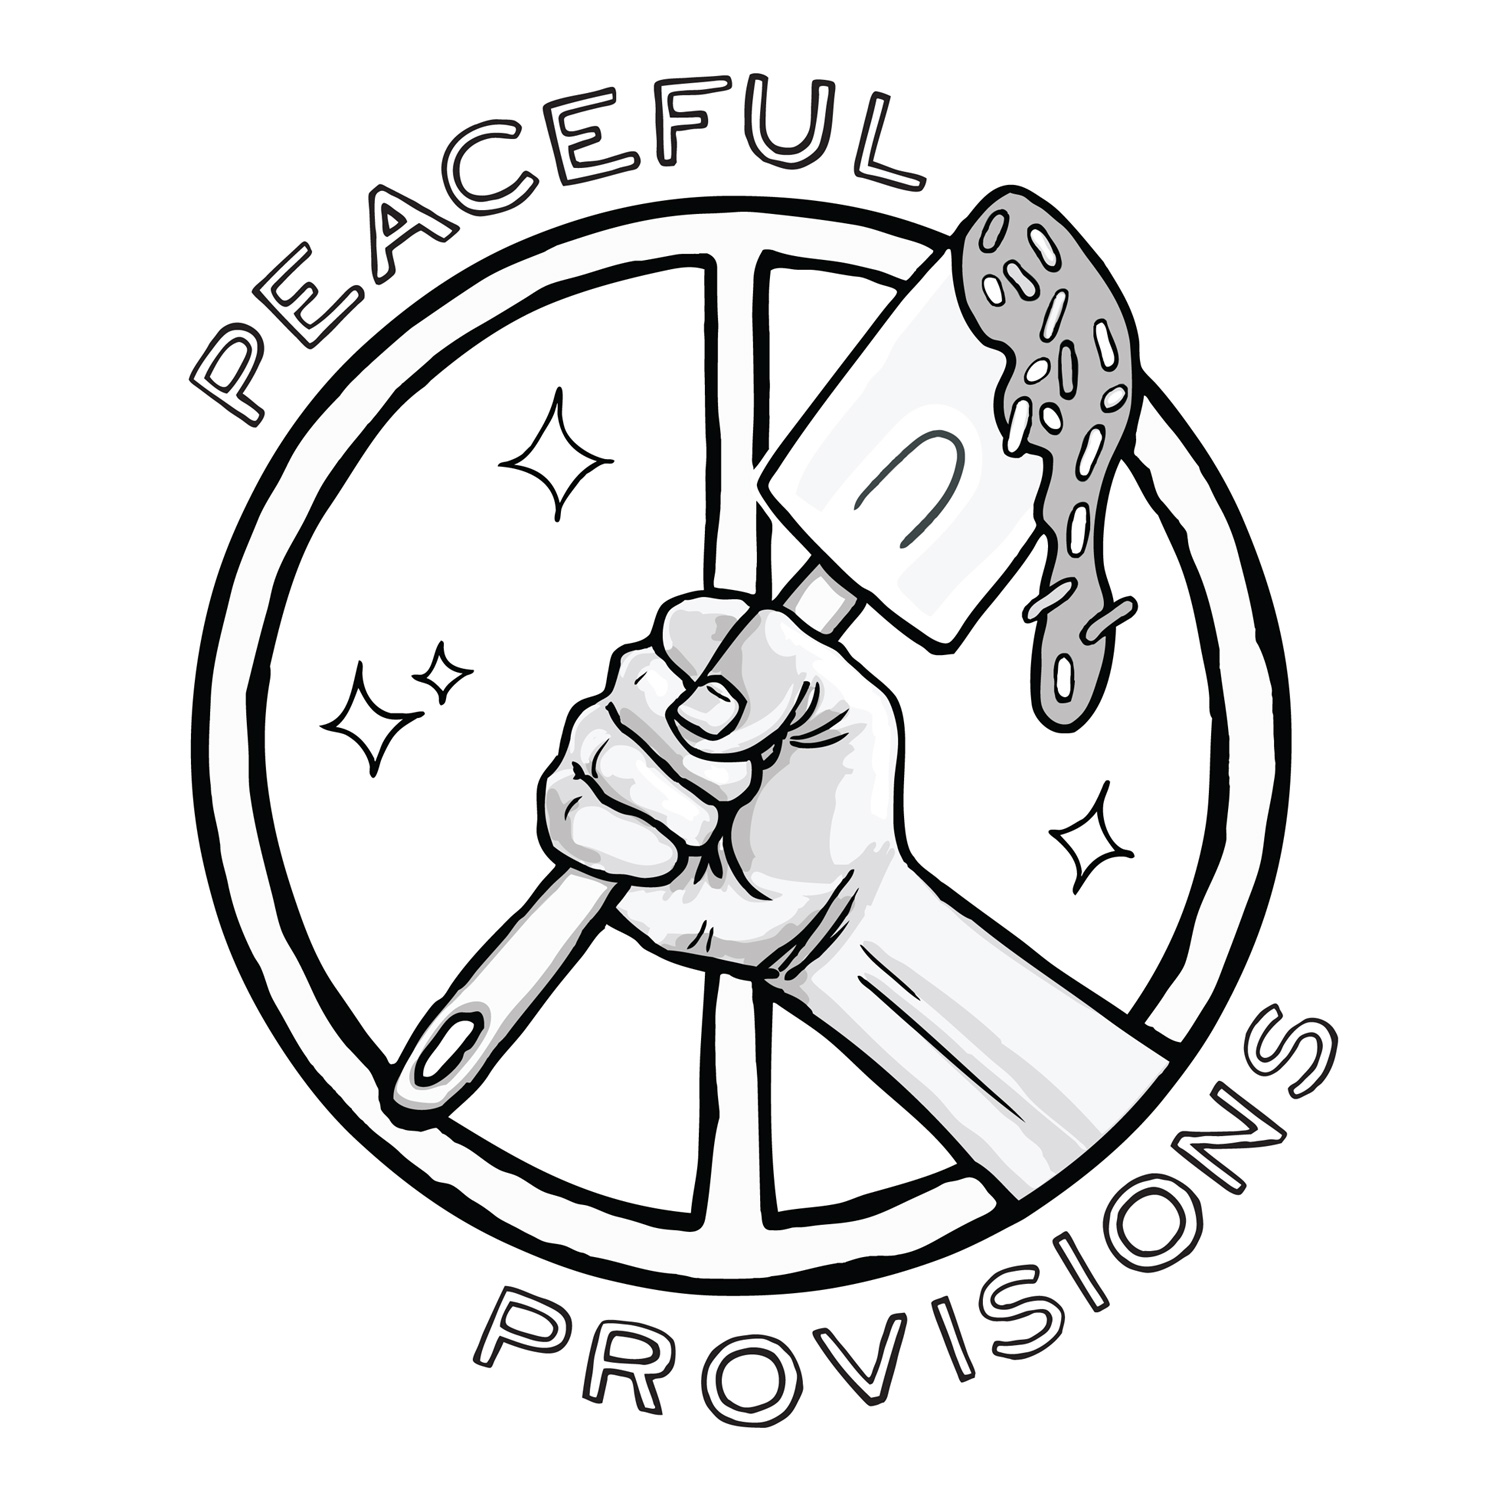 Peaceful Provisions